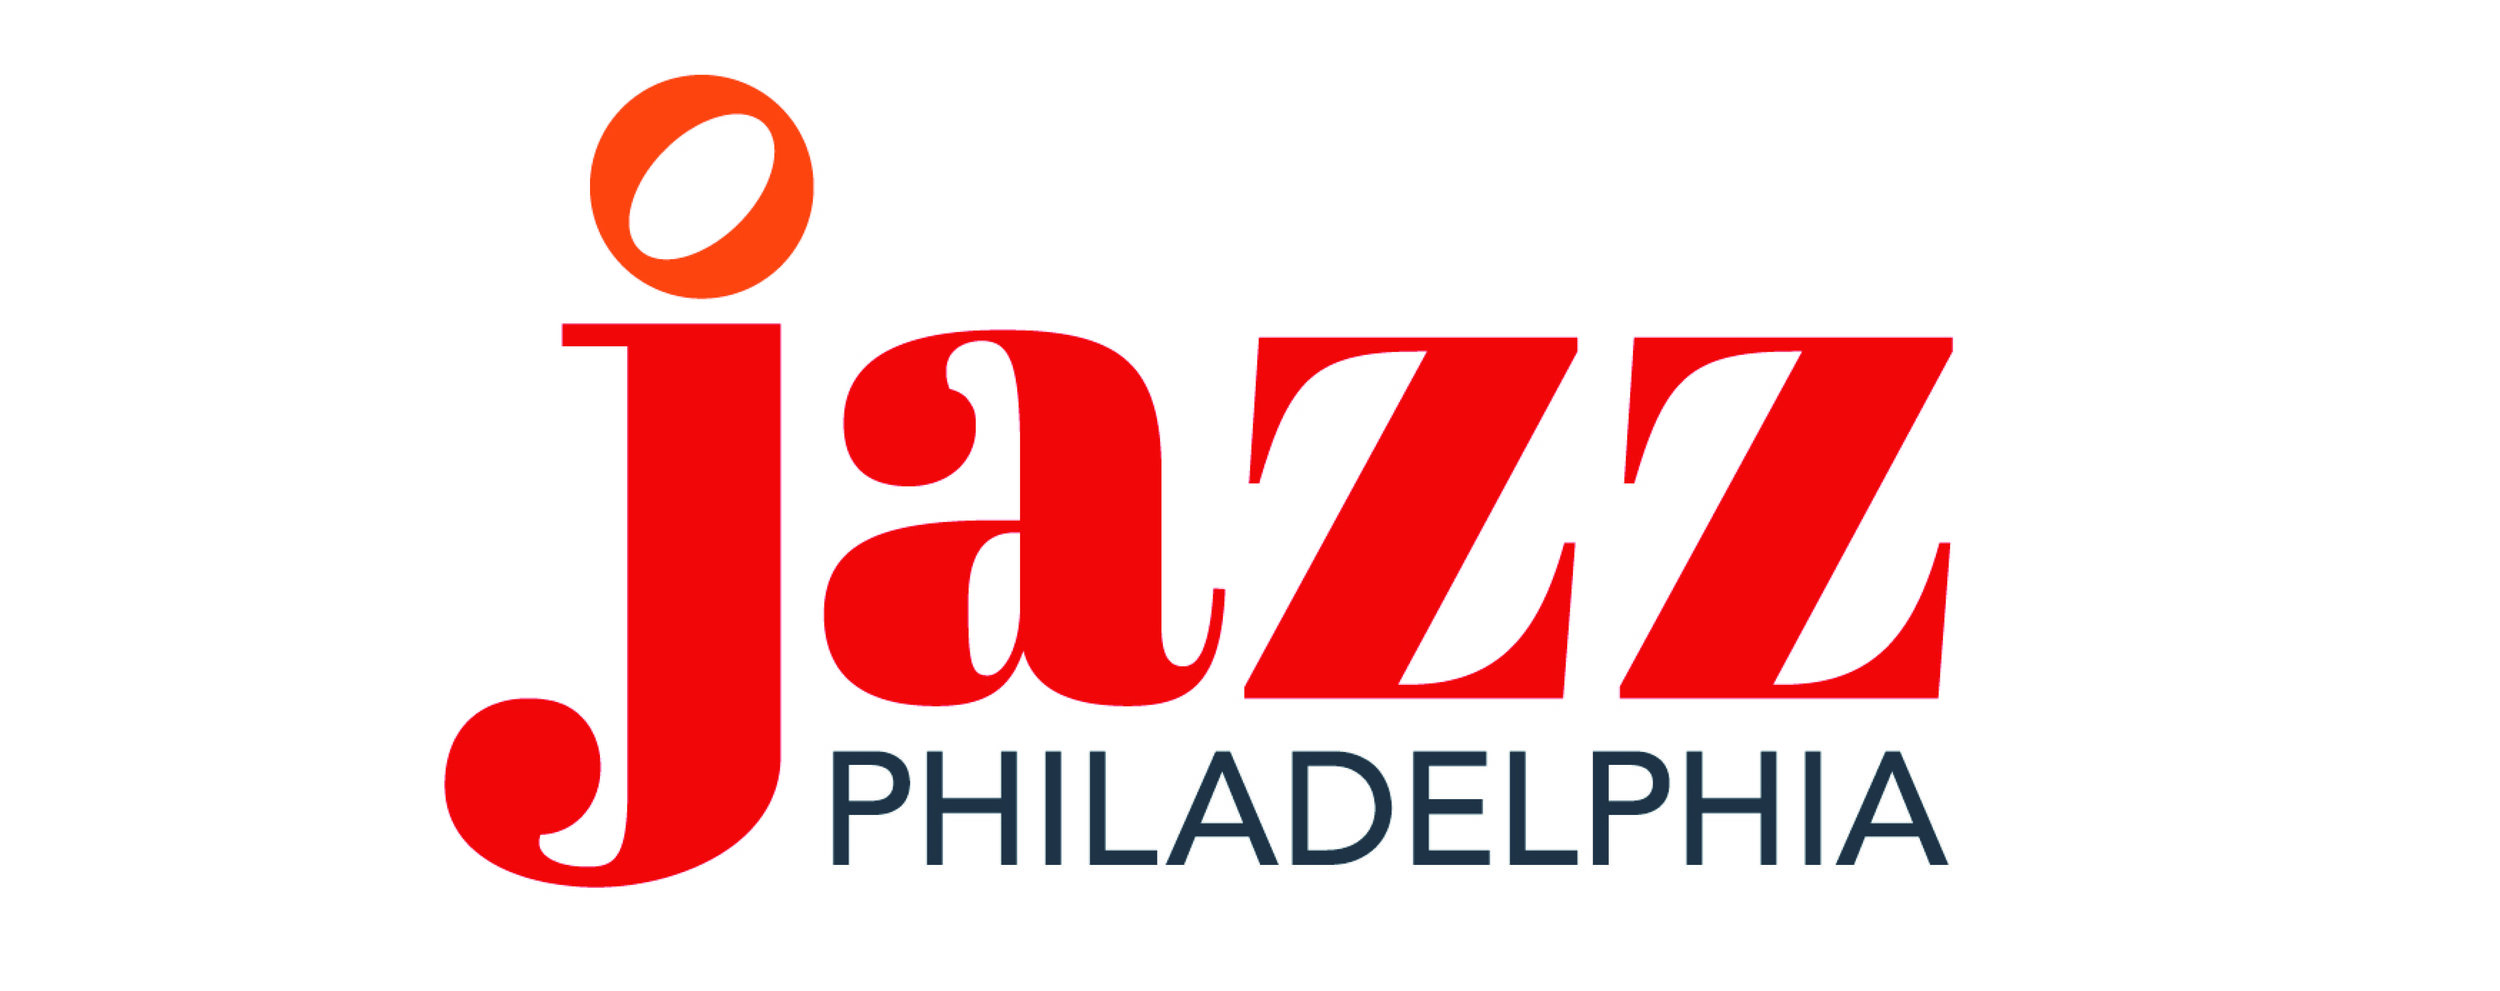 JazzPhilly-Masterbrand-Full-Colour-Positive_Small Margins.jpg